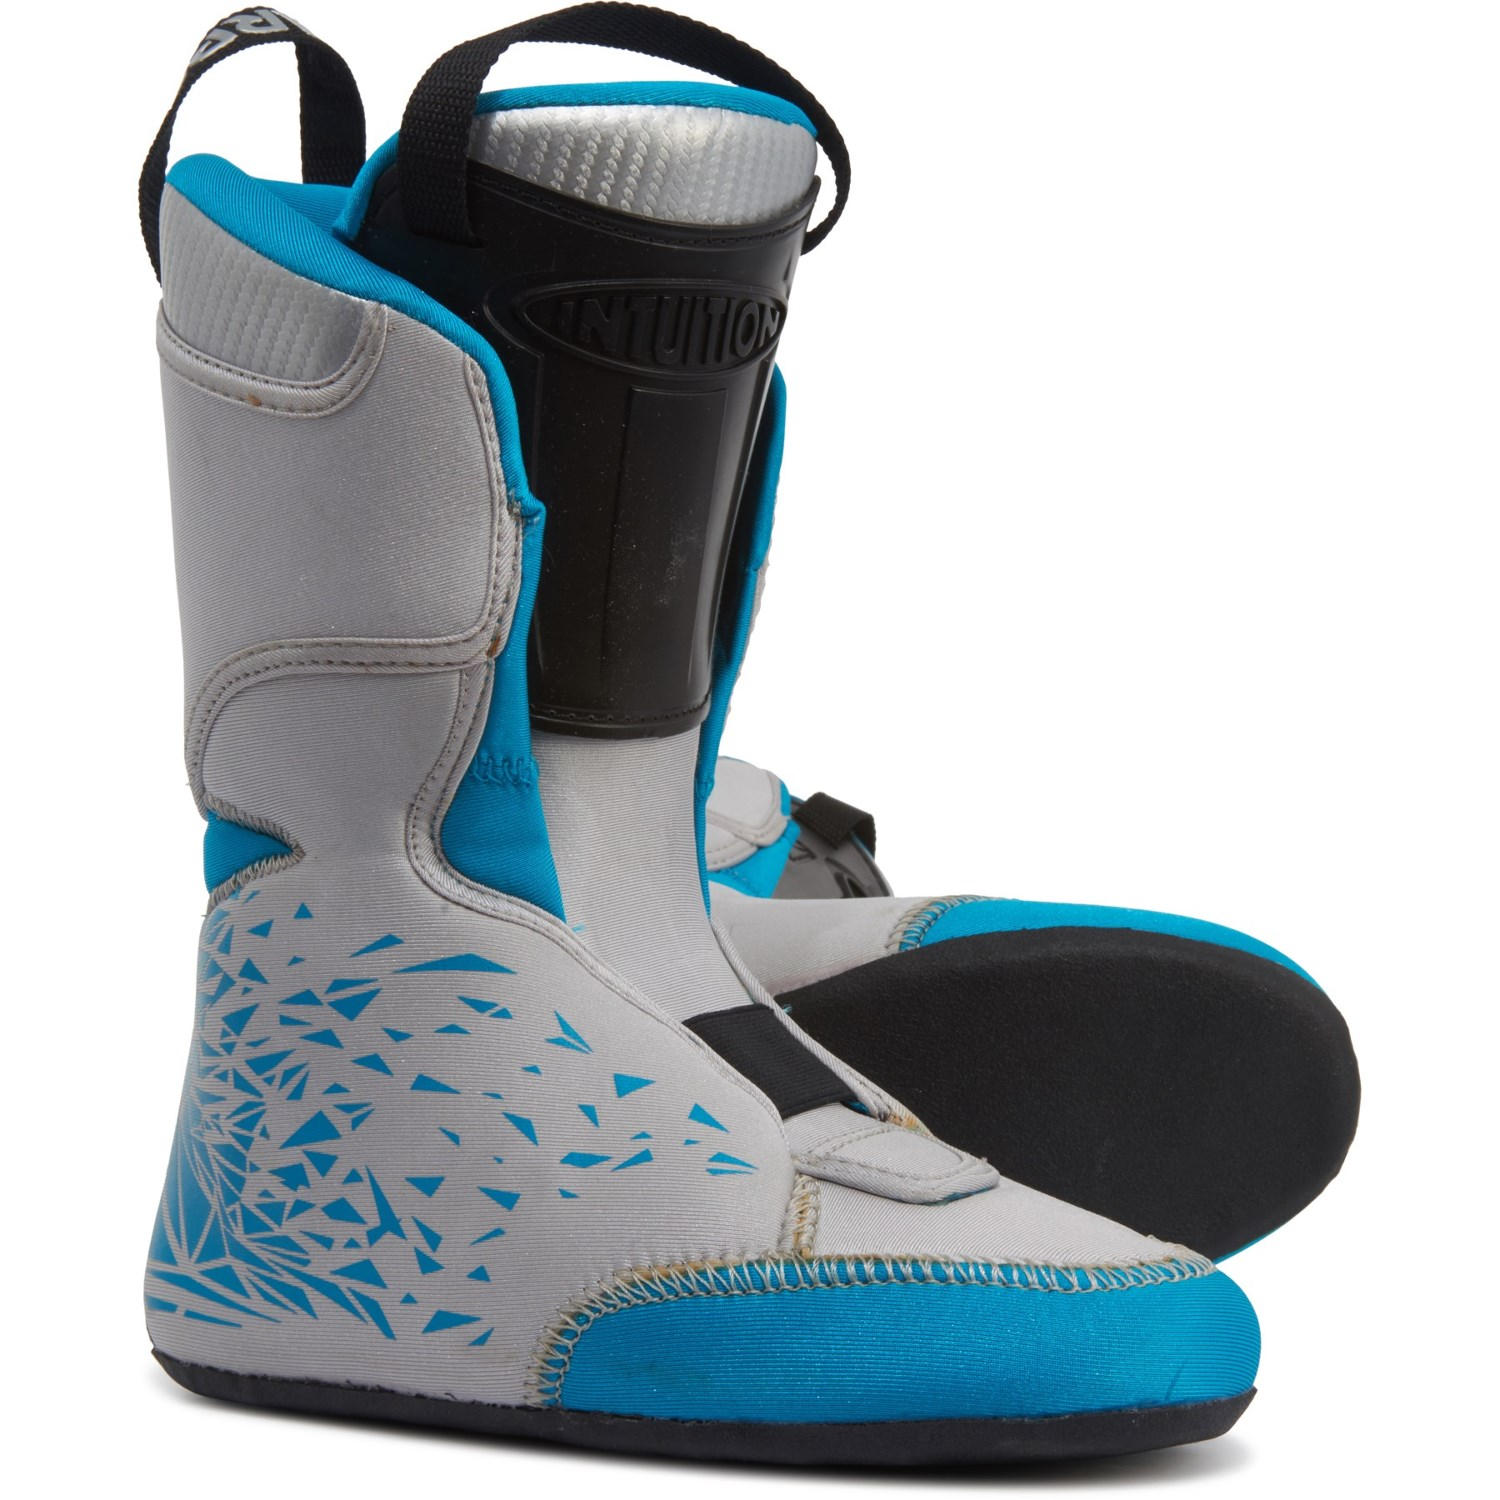 Scarpa Made In Italy Speed Ride Ski Boot Liners (For Women